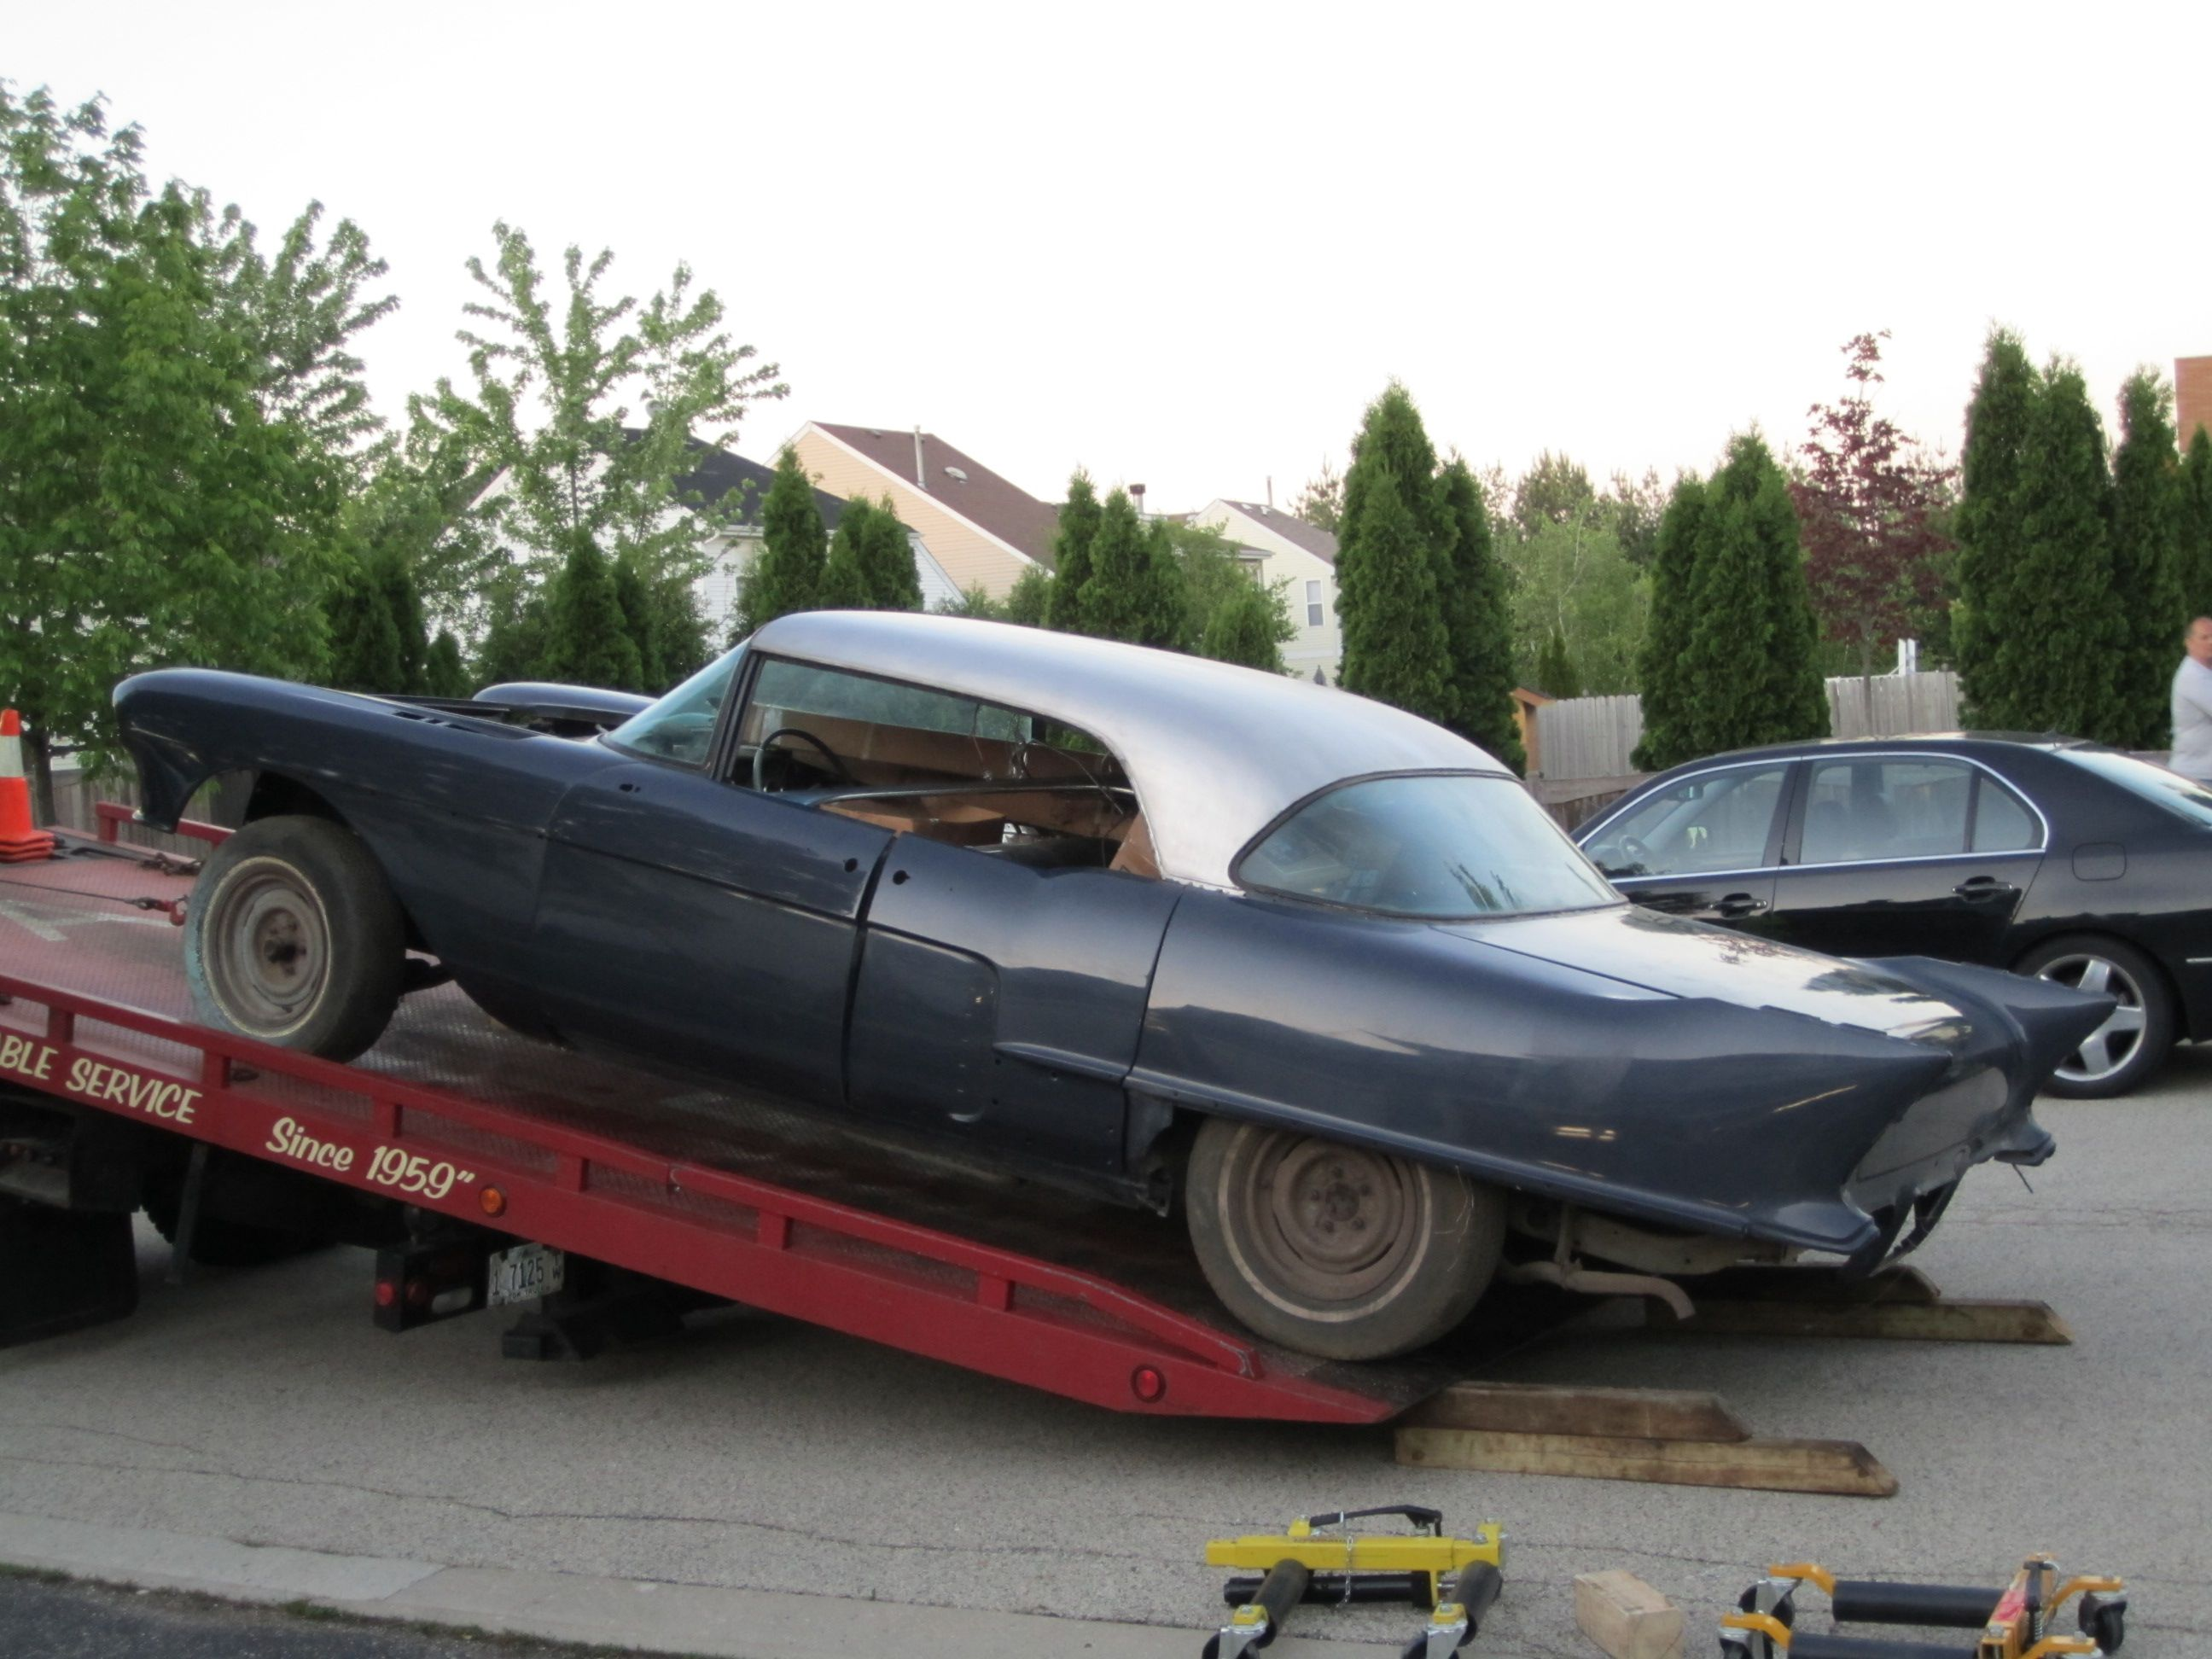 Re: 1957 Eldorado Brougham #70 getting pulled out of retirement